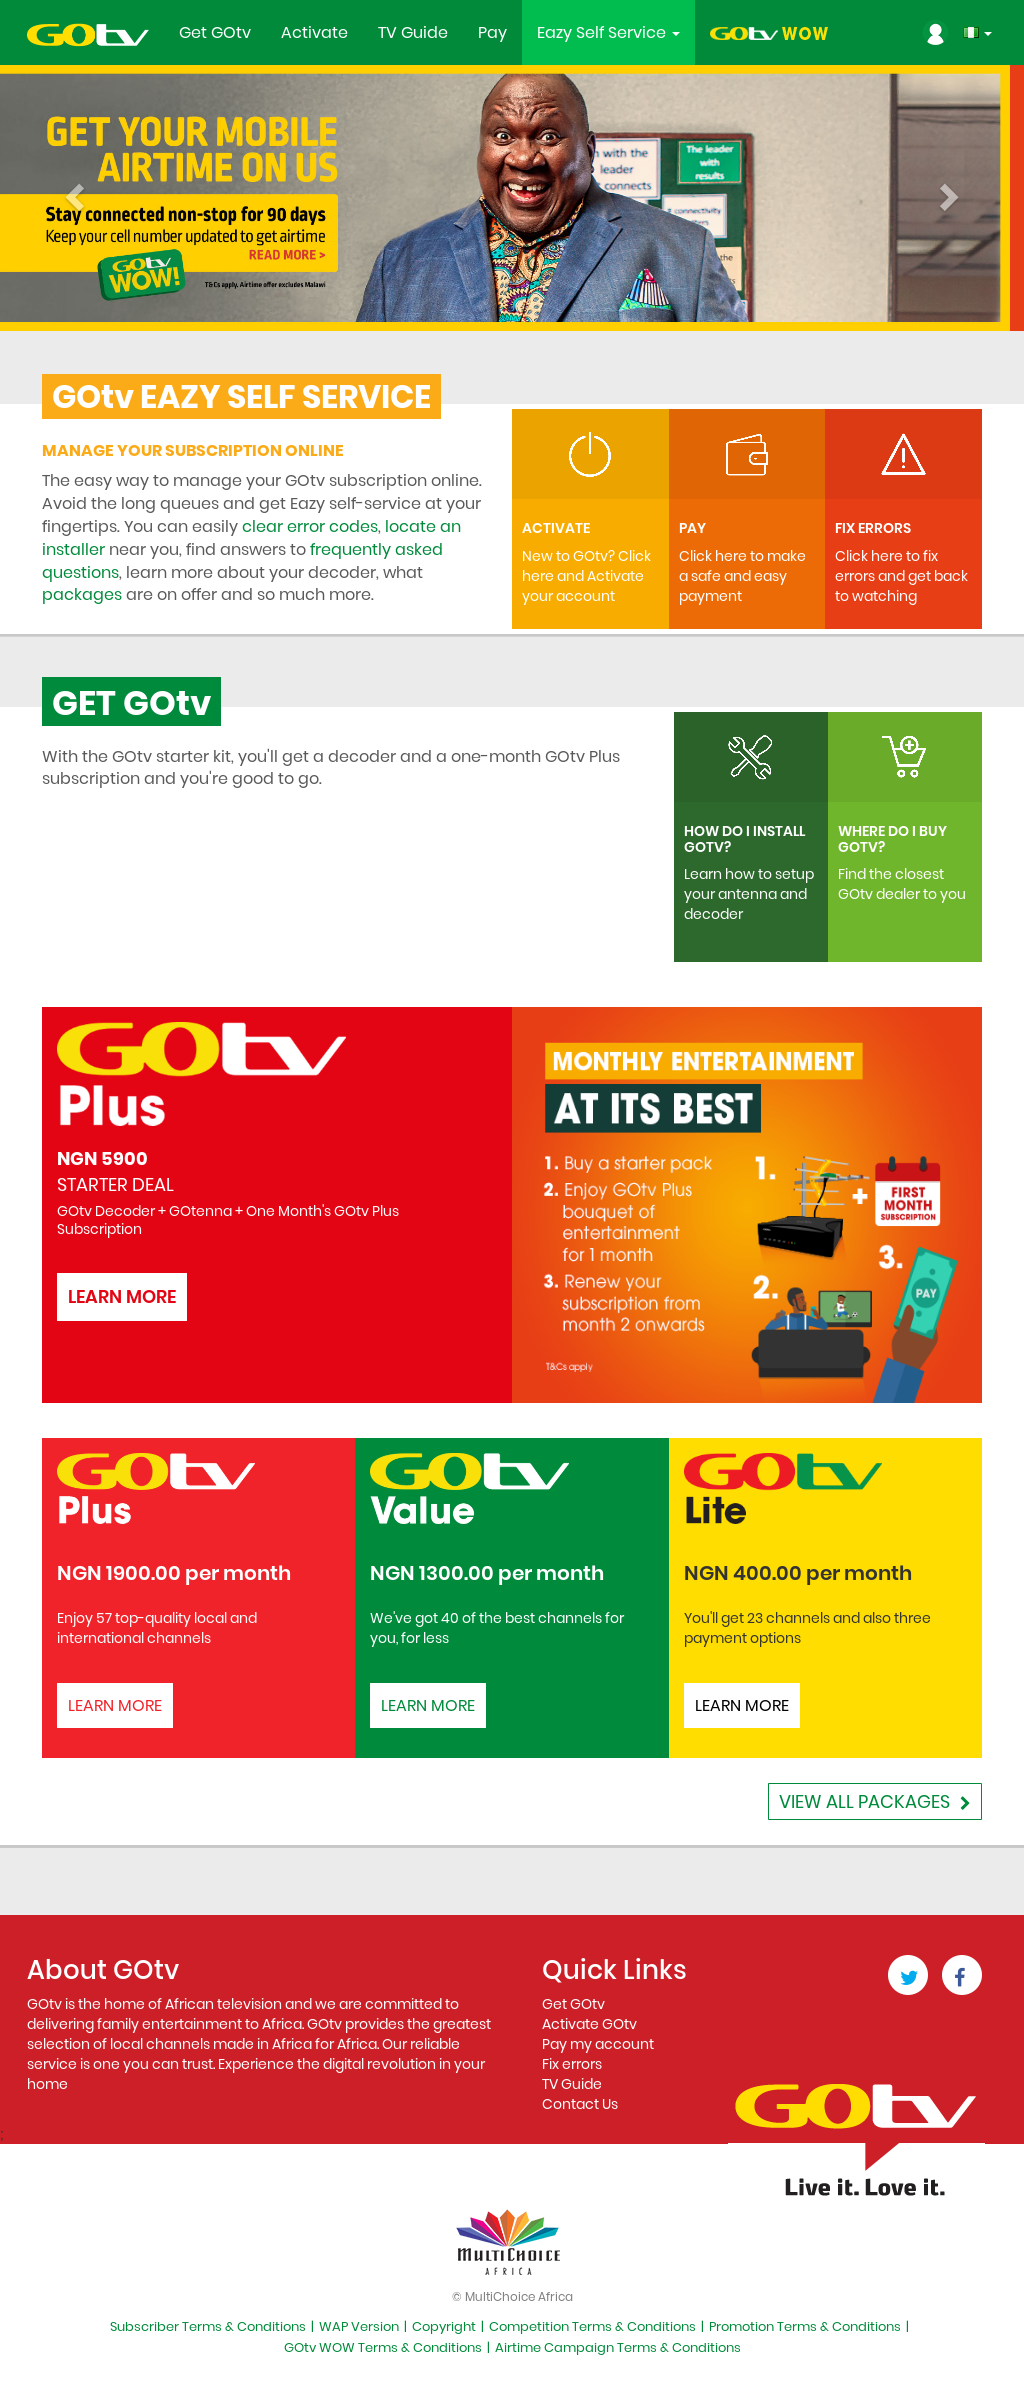 Owler Reports - GOtv Africa: ROK launches two brand new